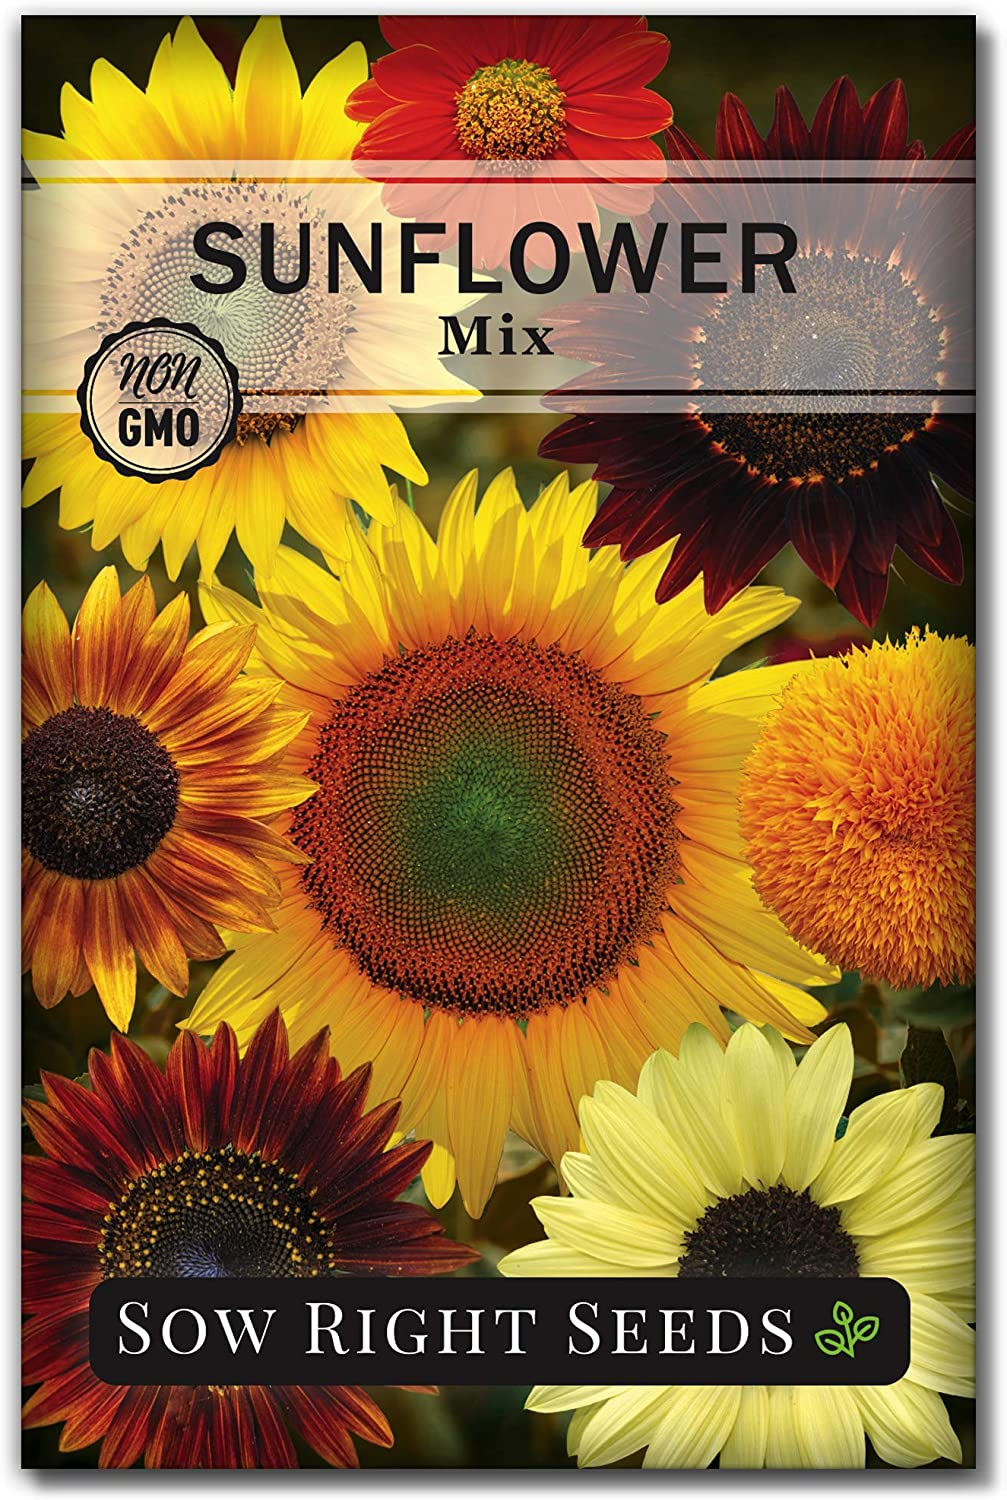 Sow Right Seeds - Large Full-Color Packet of Mixed Sunflower Seed to Plant - Non-GMO Heirloom - Instructions for Planting - Wonderful Gardening Gift (1)